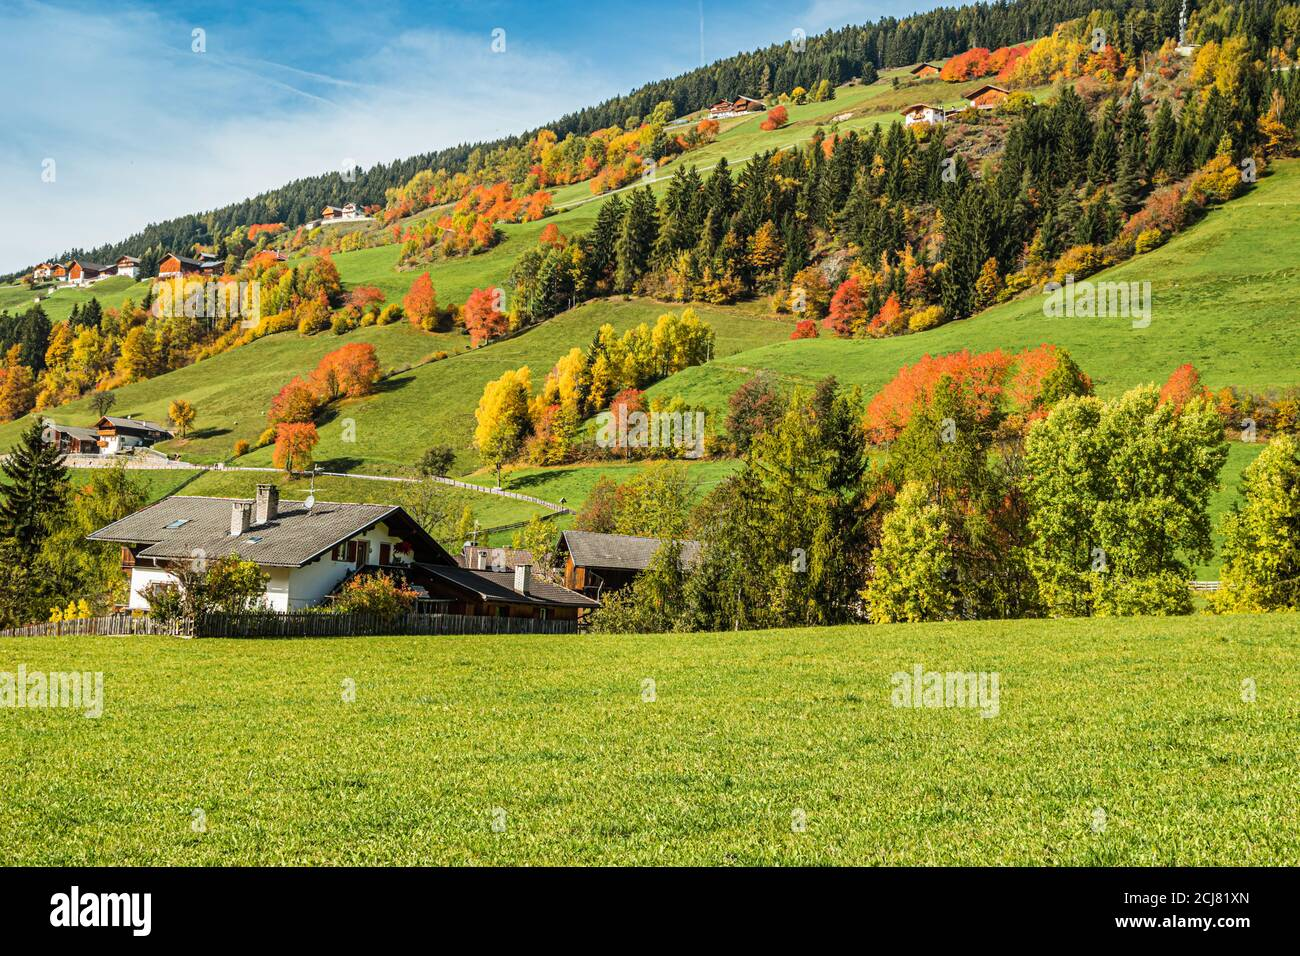 Early autumn in the village of Santa Magdalena in northern Italy on the slopes of the Dolomites in the valley of Val di Funes. Stock Photo